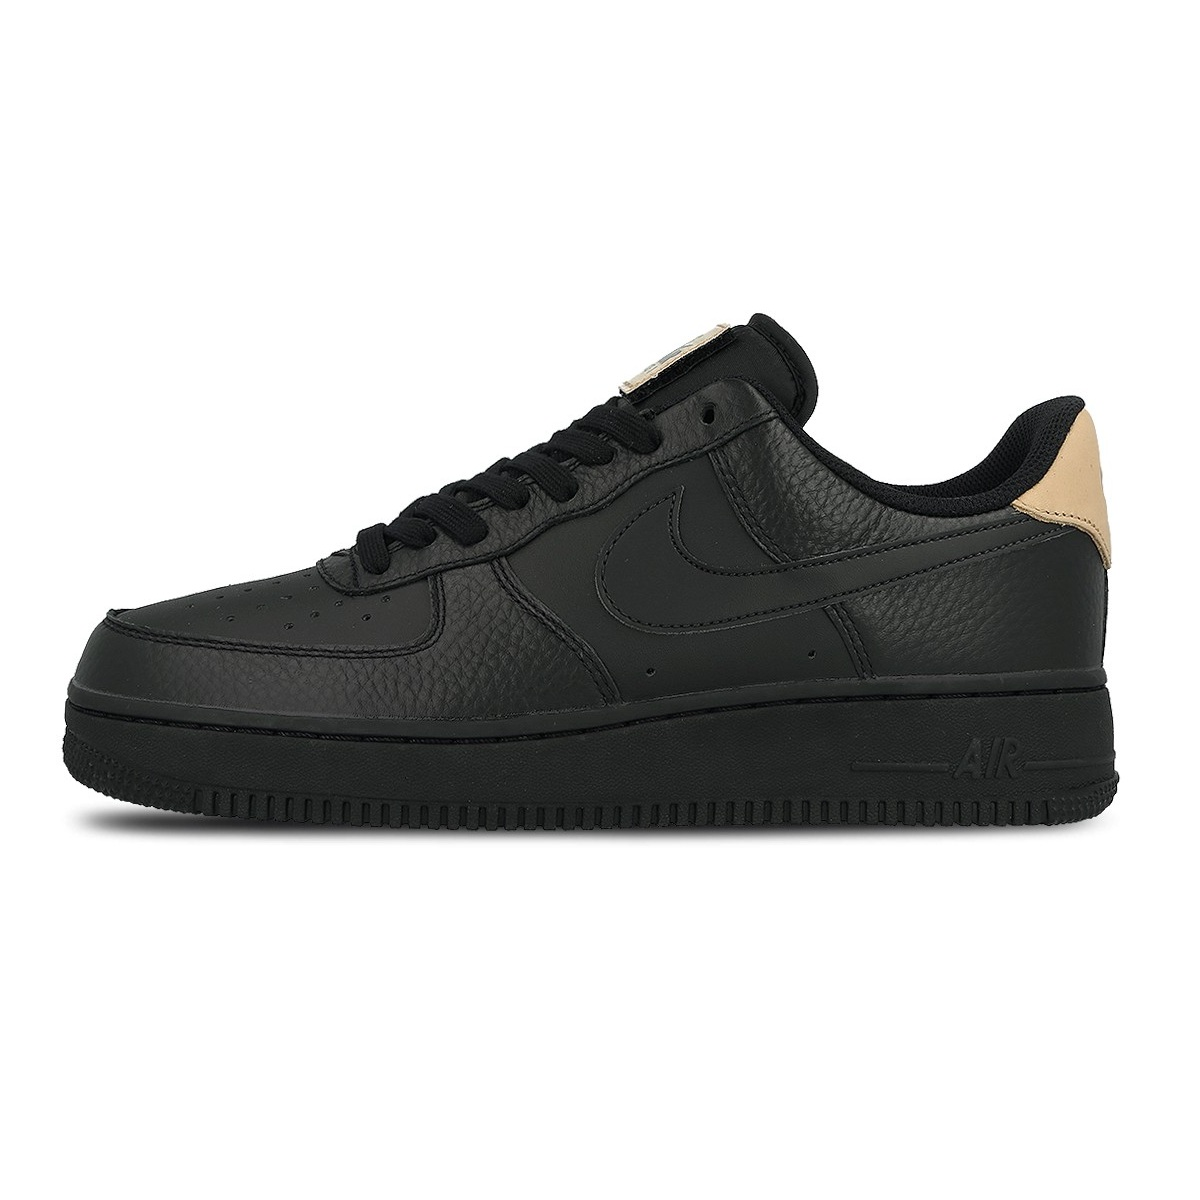 School bags online cyprus - Nike Air Force 1 07 Lv8 Privesports Cyprus Online Shop